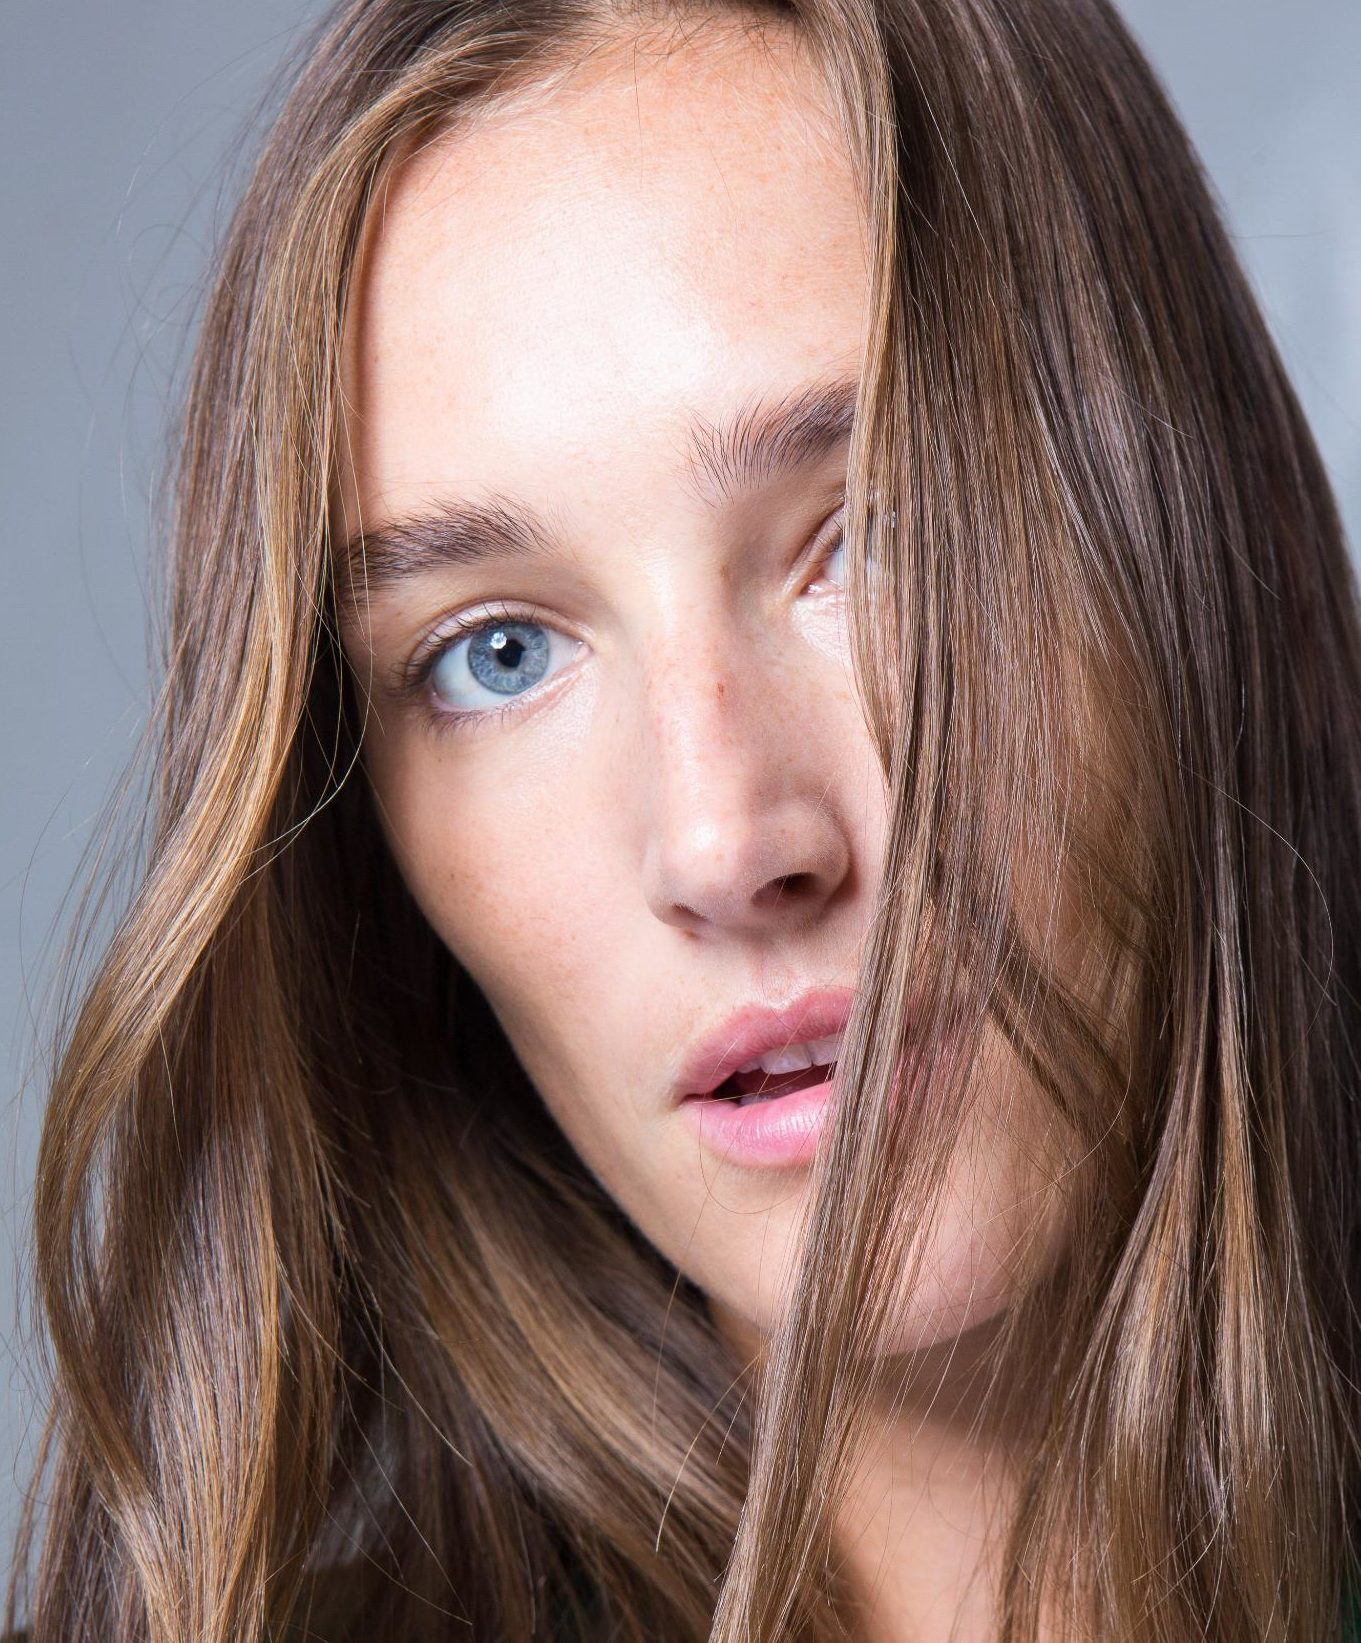 Anti-frizz spray: Model backstage at SS19 Isabel Marant show with wavy brown hair.